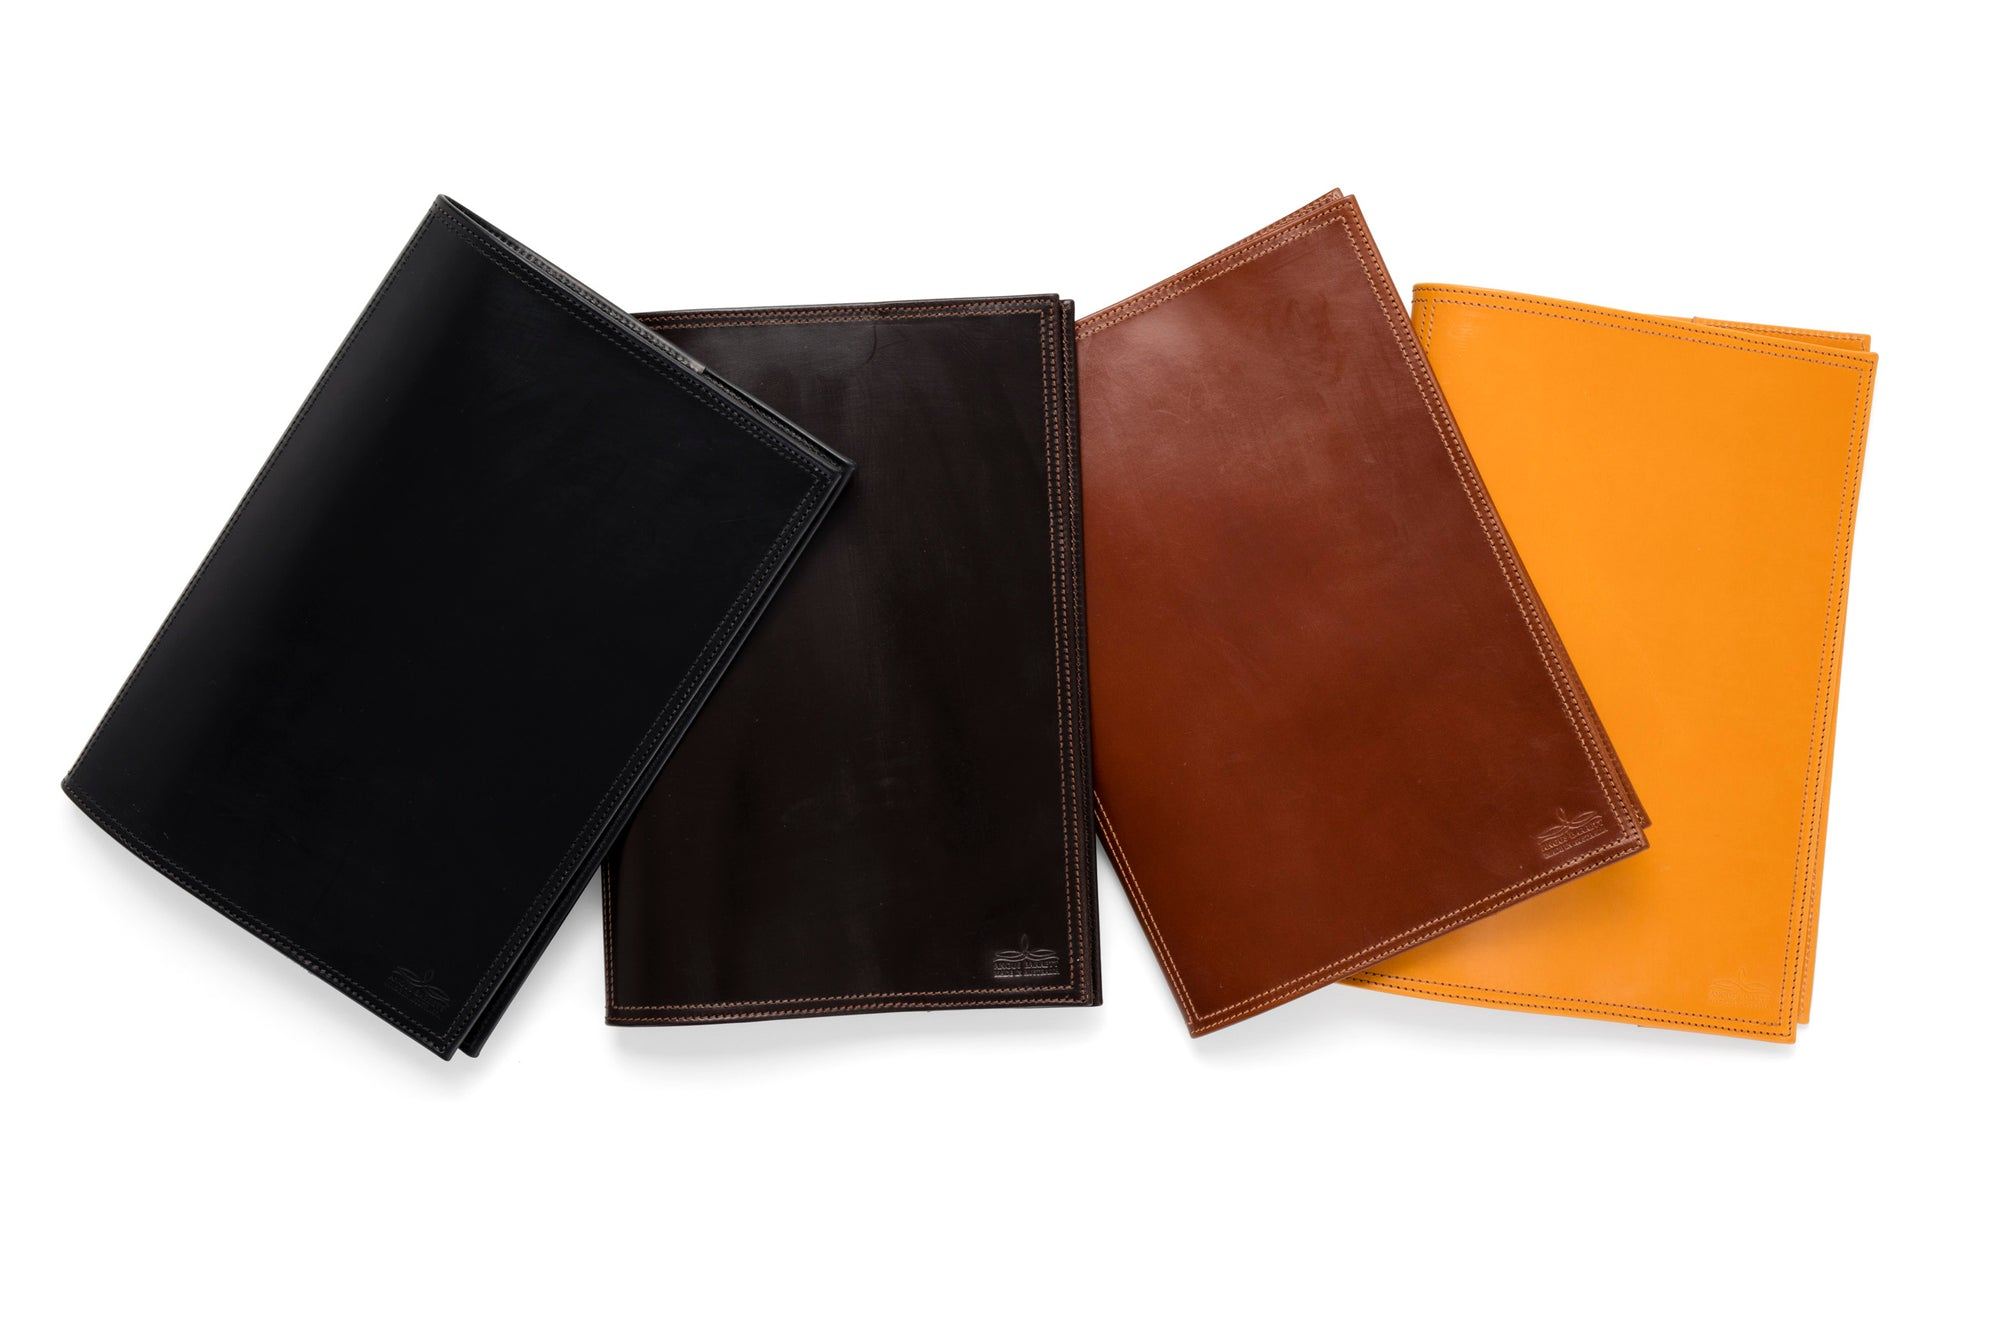 Angus Barrett A4 Diary Cover In Black Dark Brown Tan And Gold